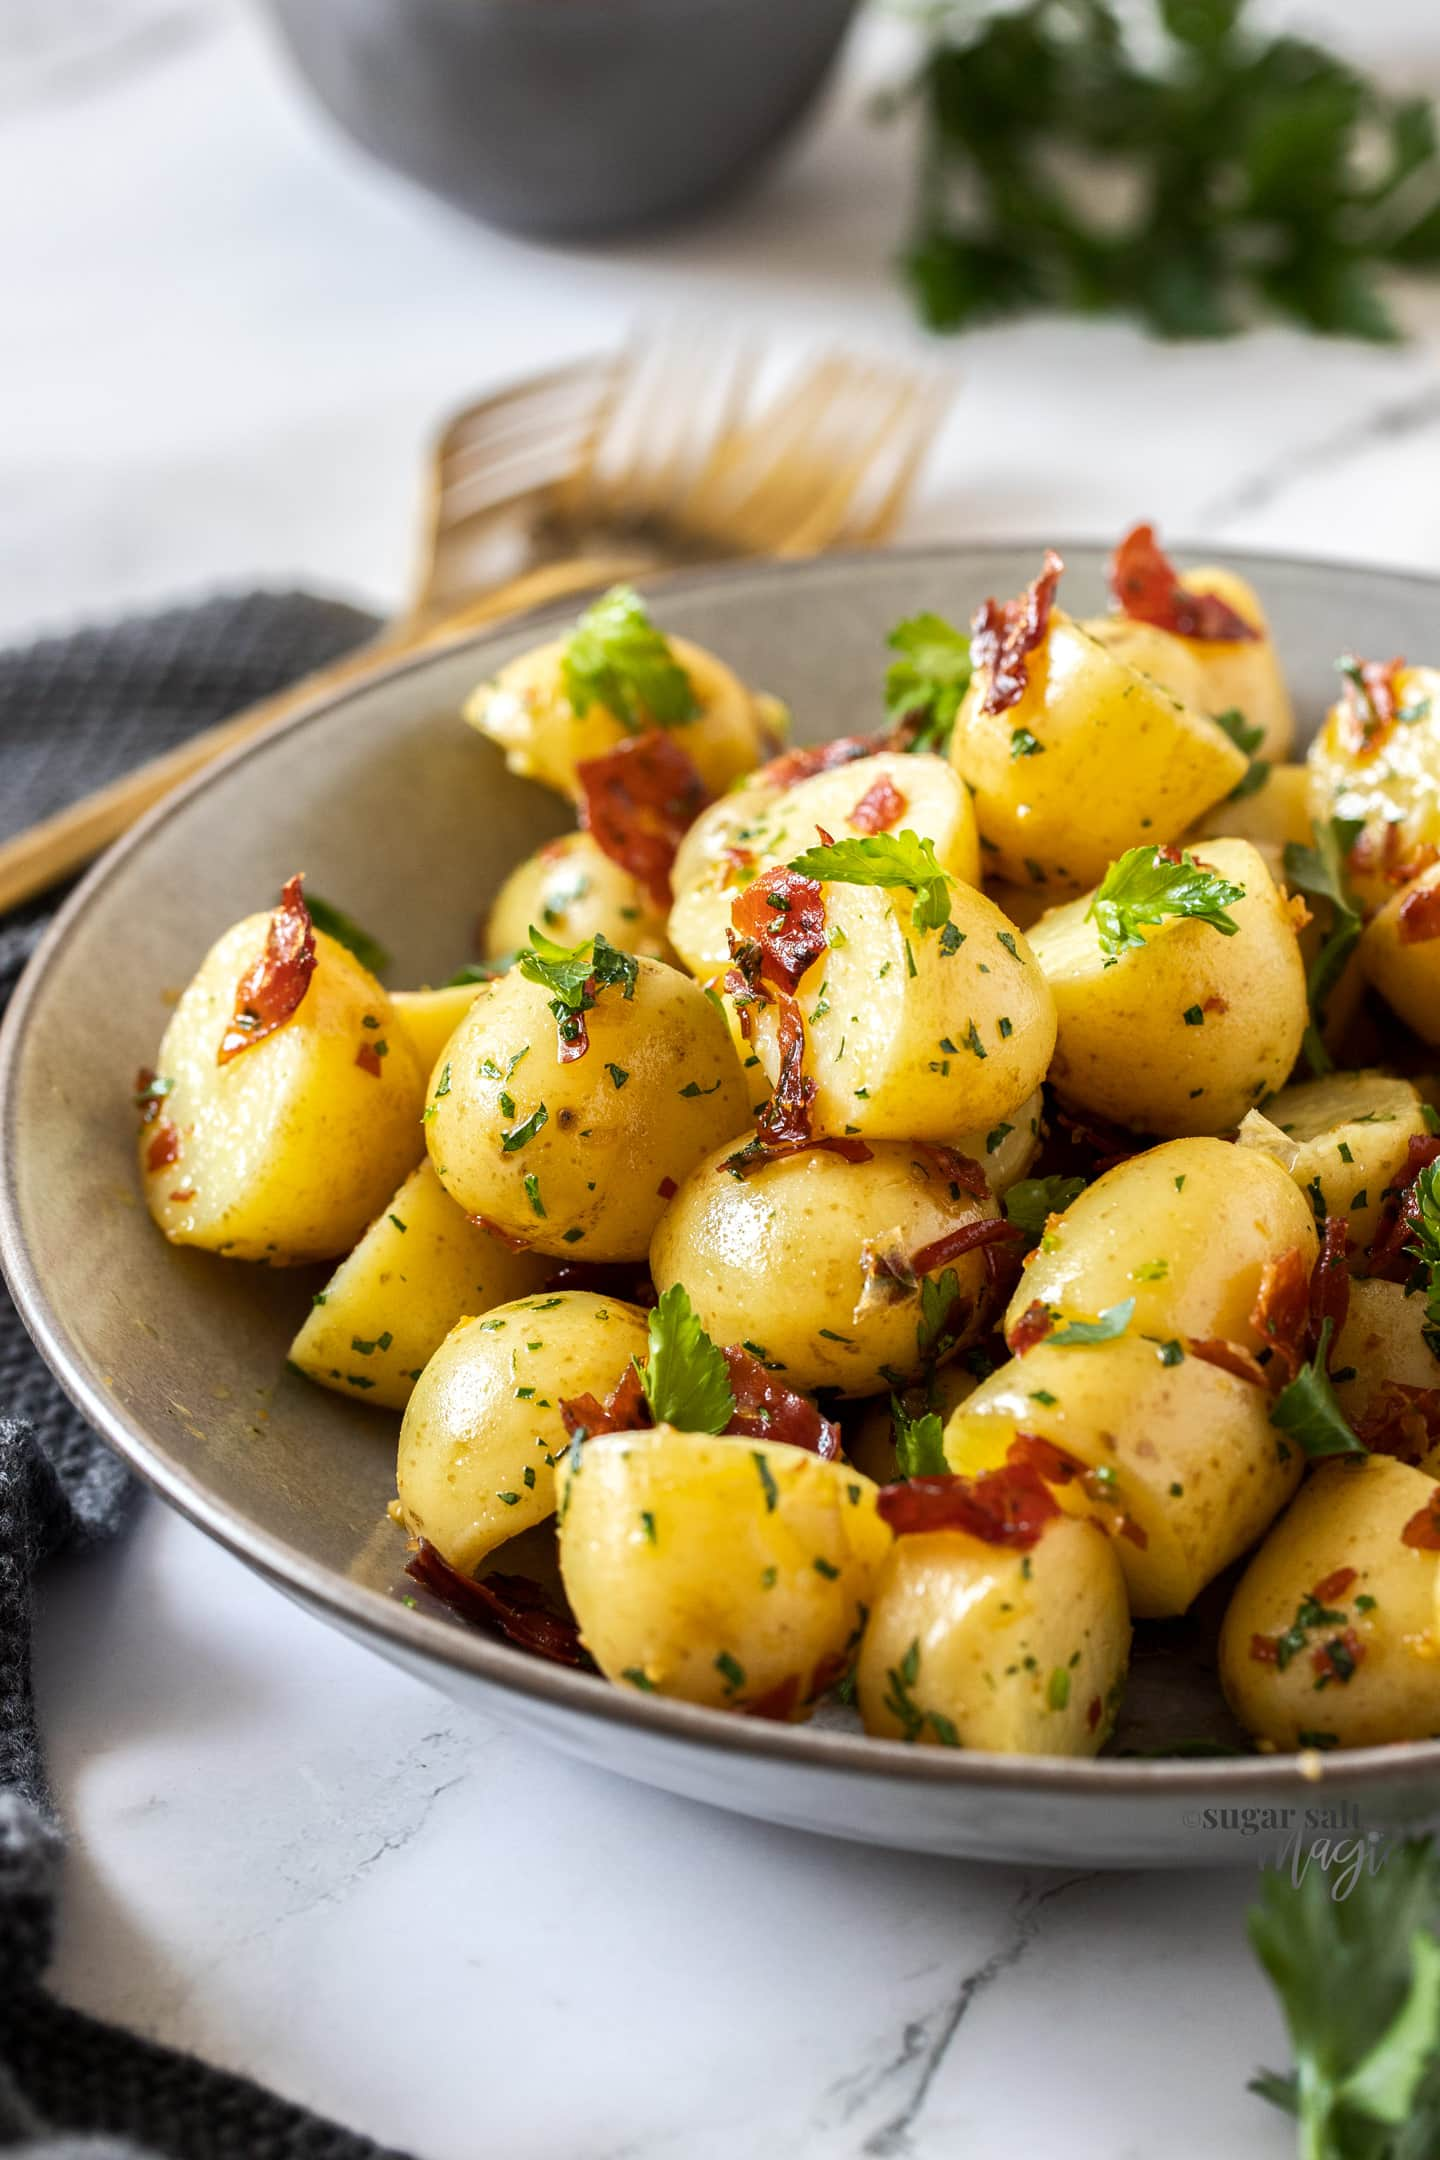 A grey bowl filled with cooked potatoes sprinkled with parsley and prosciutto